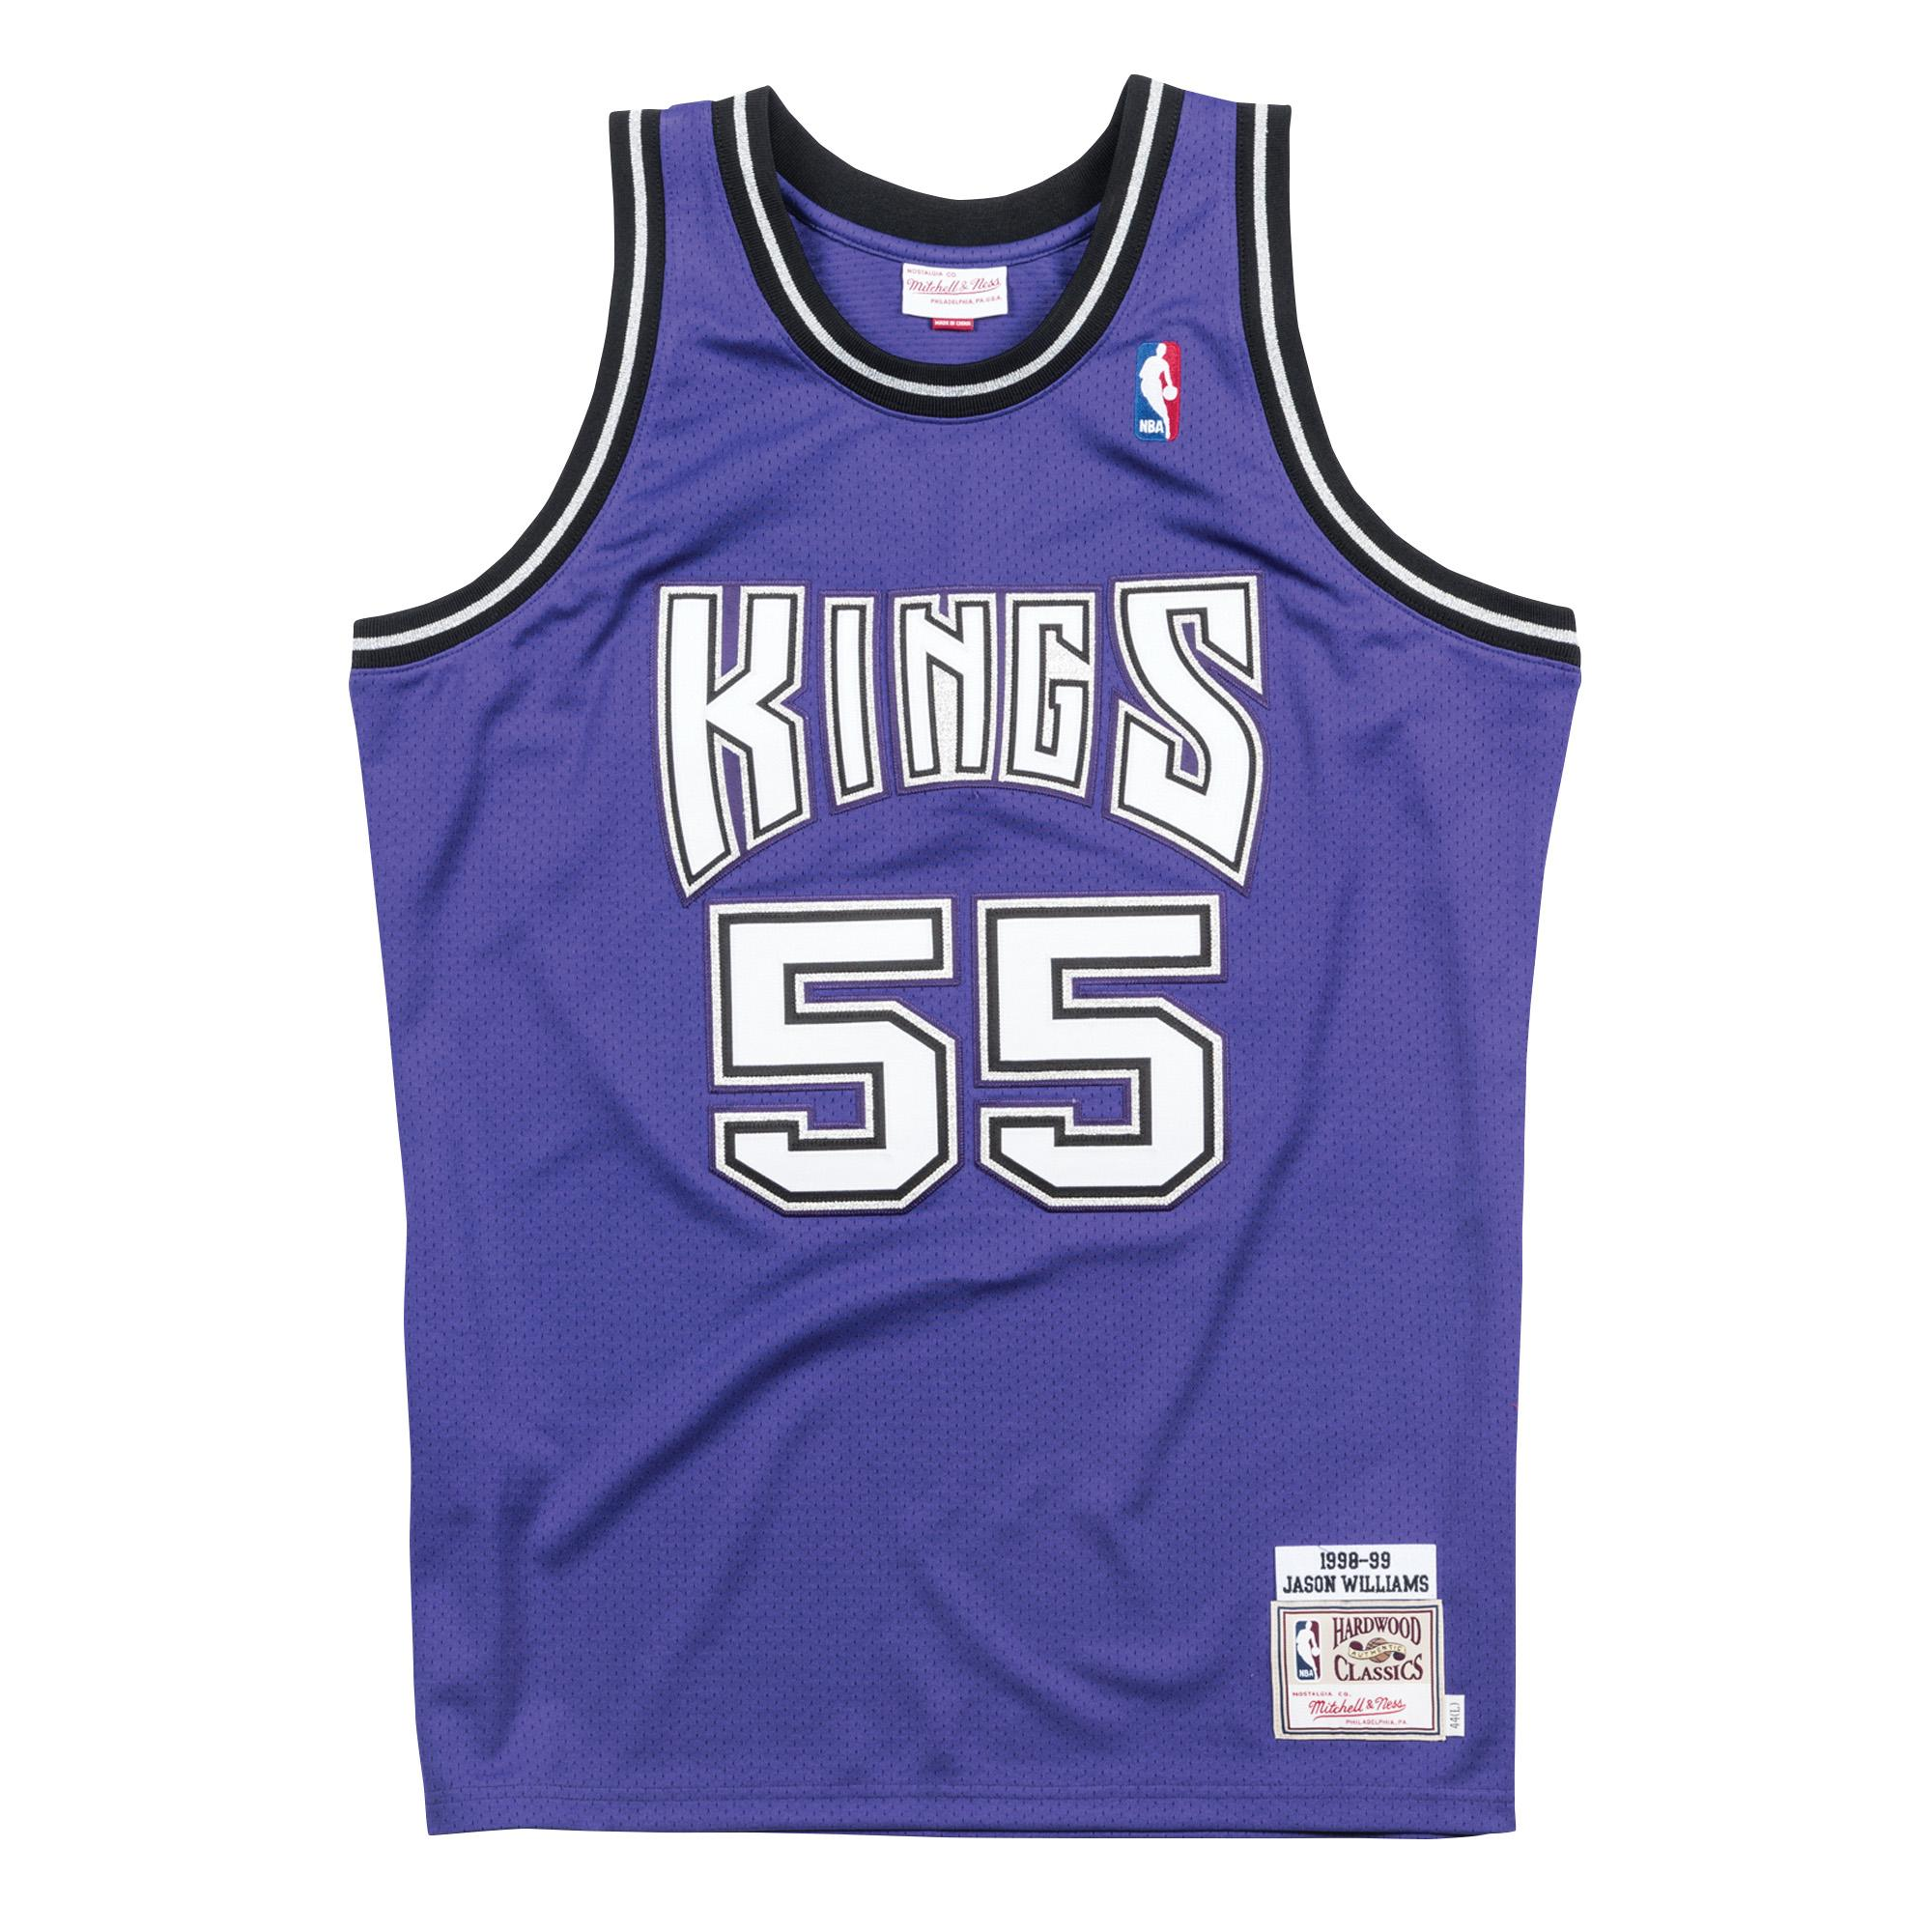 6023a838a72 Jason Williams 1998-99 Alternate Authentic Jersey Sacramento Kings